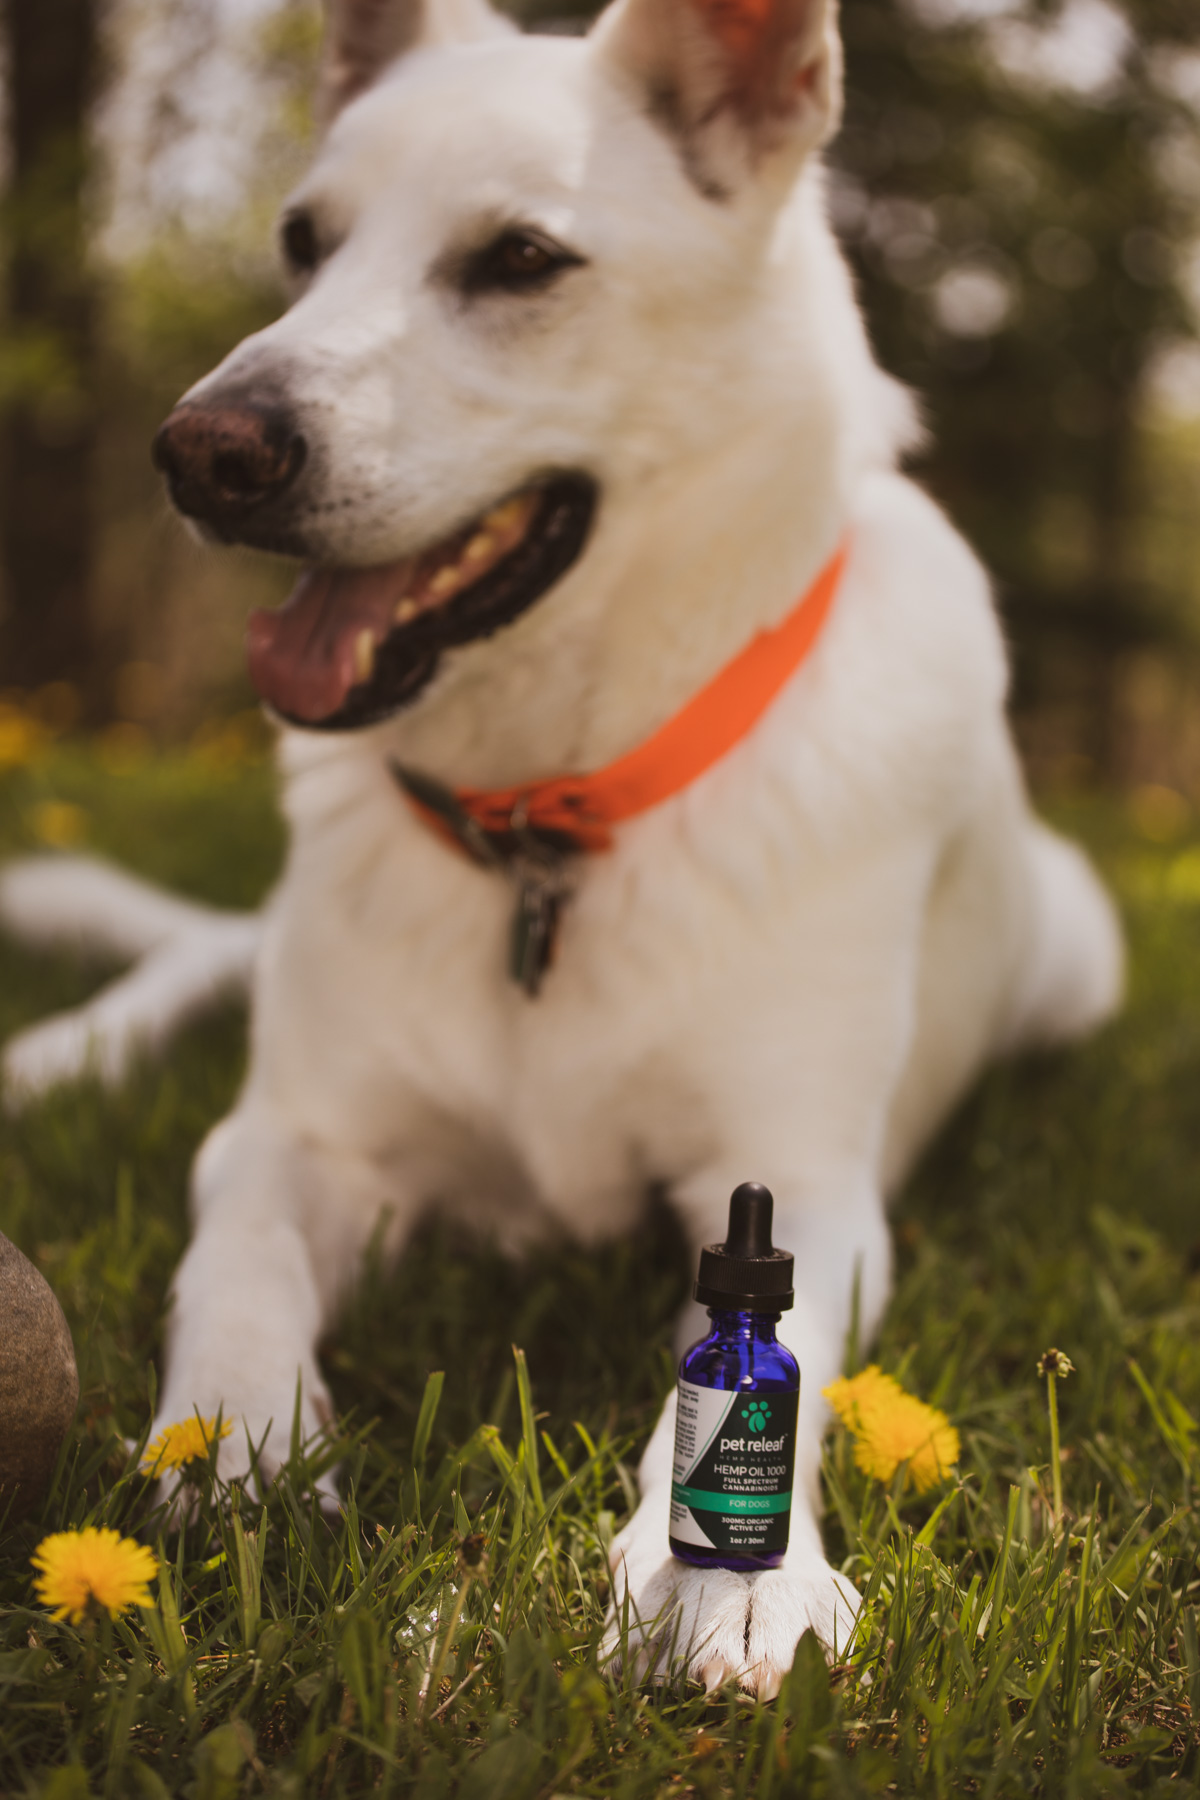 Spetsna's Sickly Winter & Pet Releaf CBD Oil Review | The Wolfdog Life